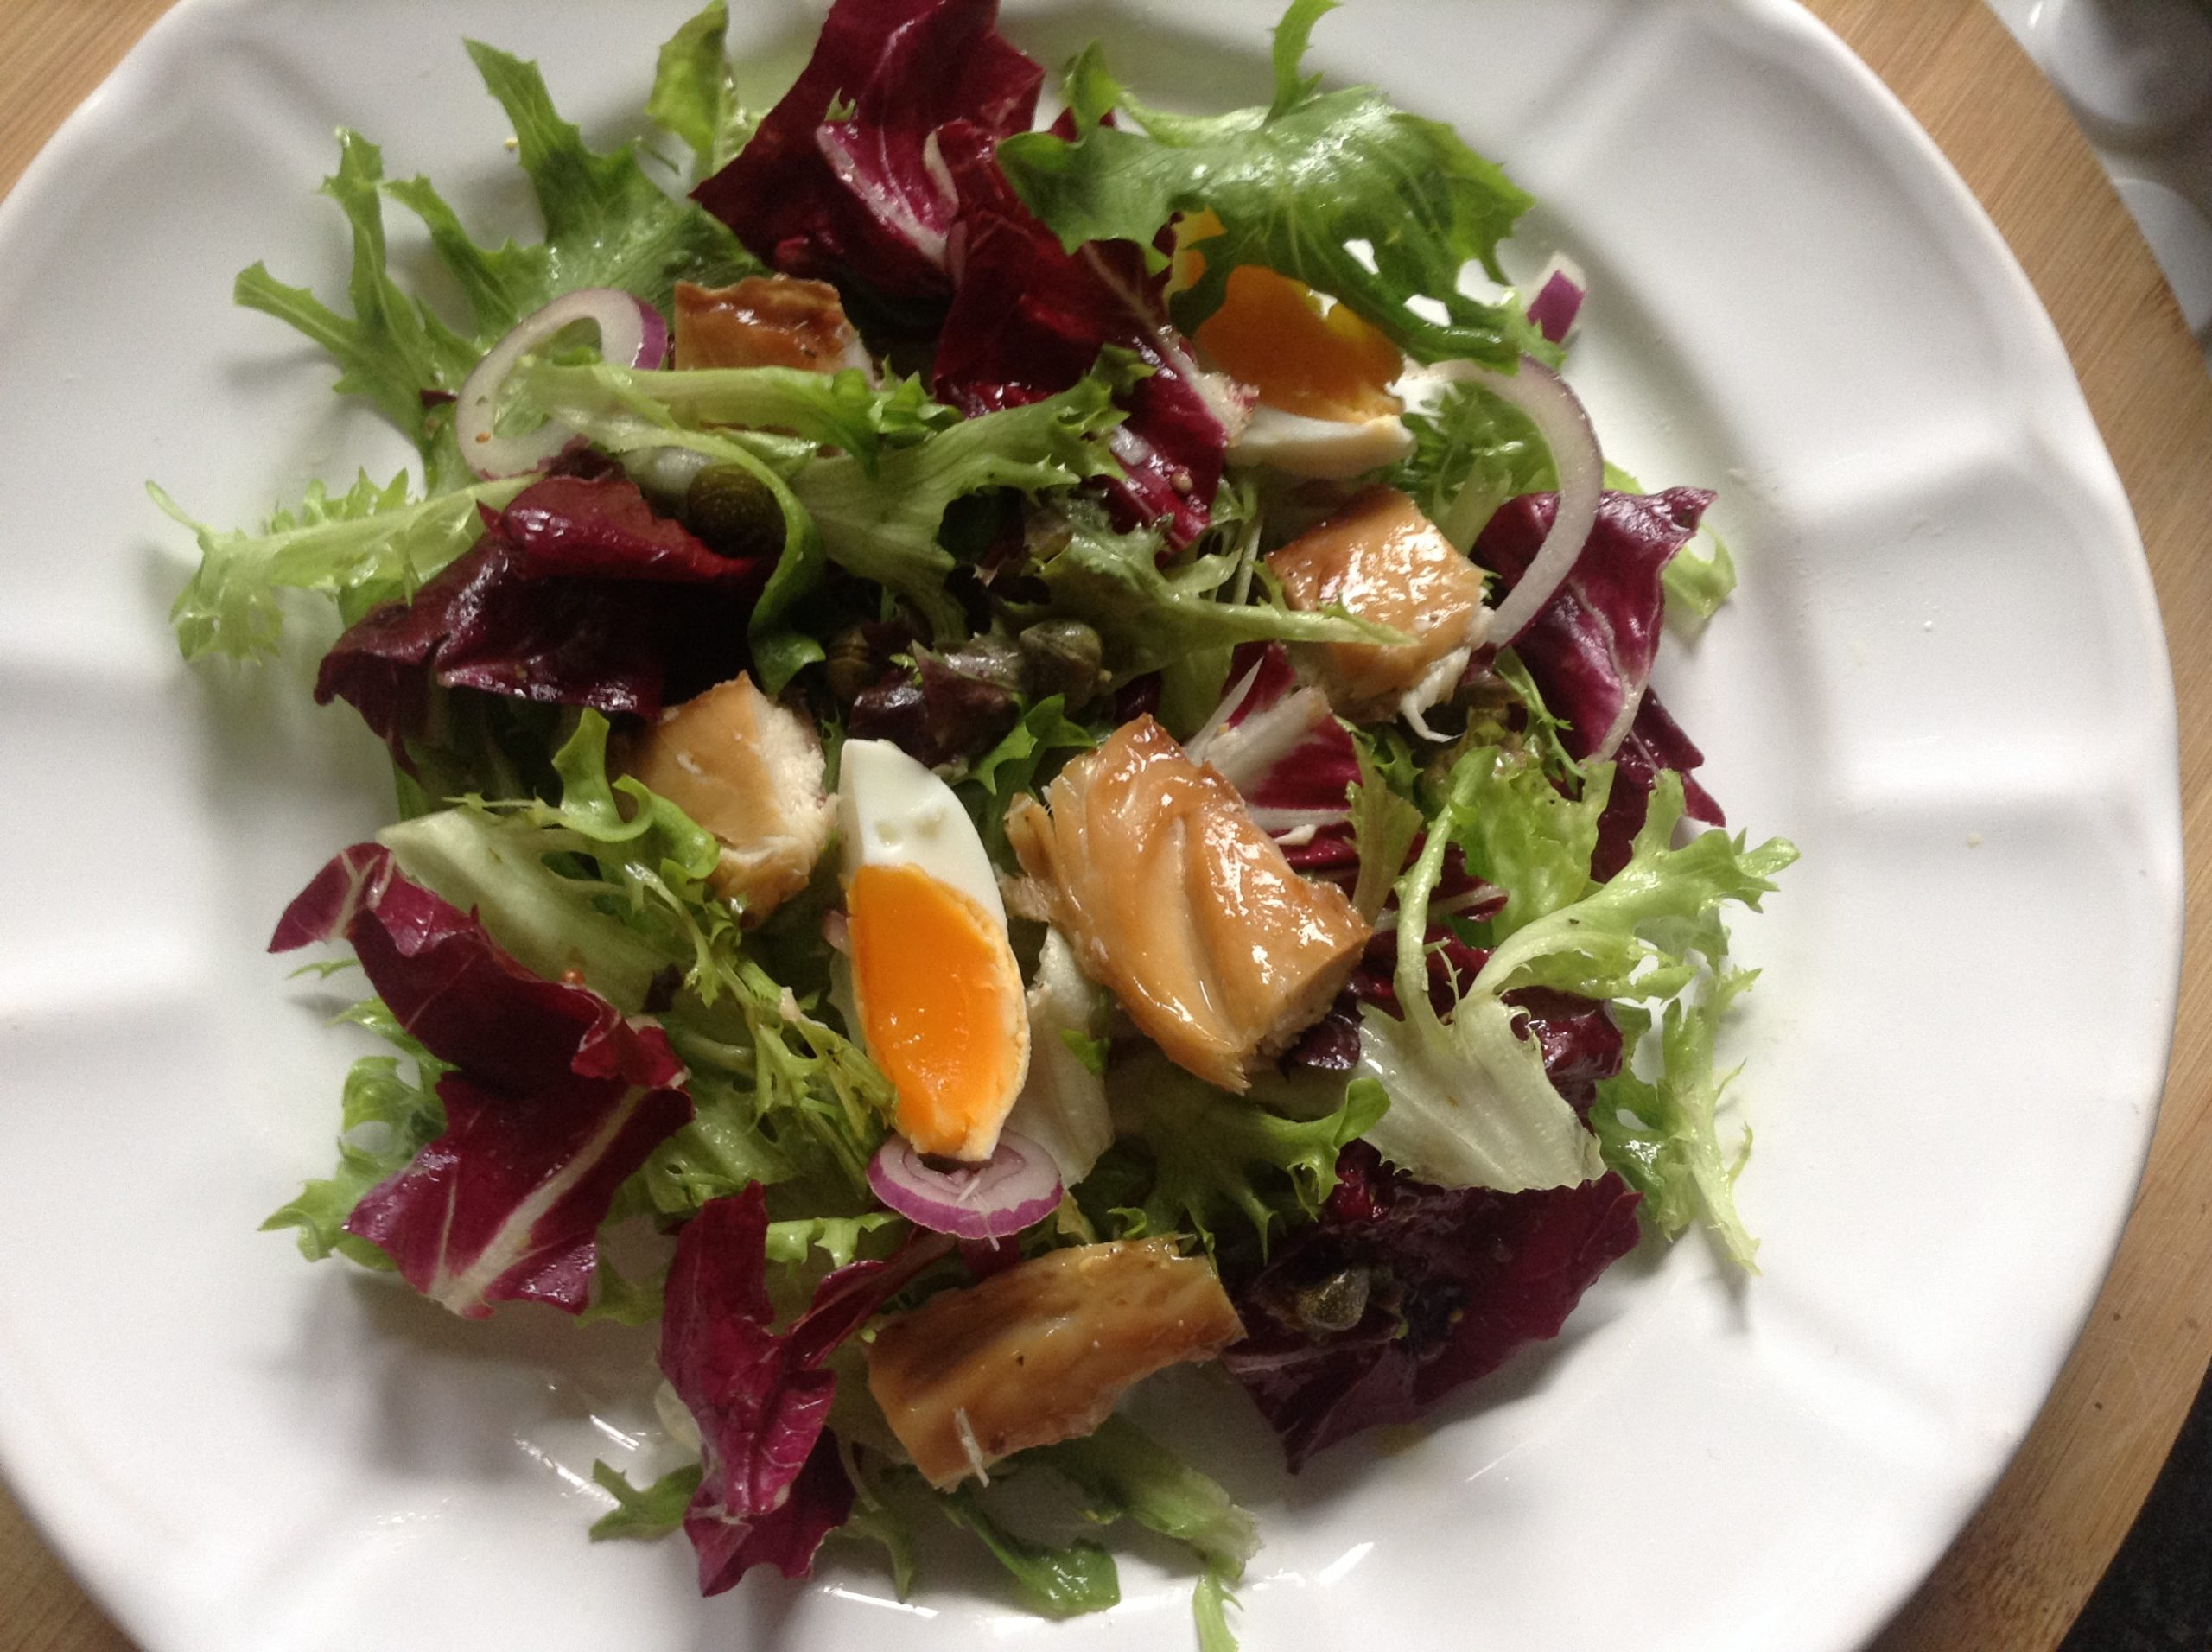 Mackerel, eggs & radicchio salad with red onion and capers vinaigrette